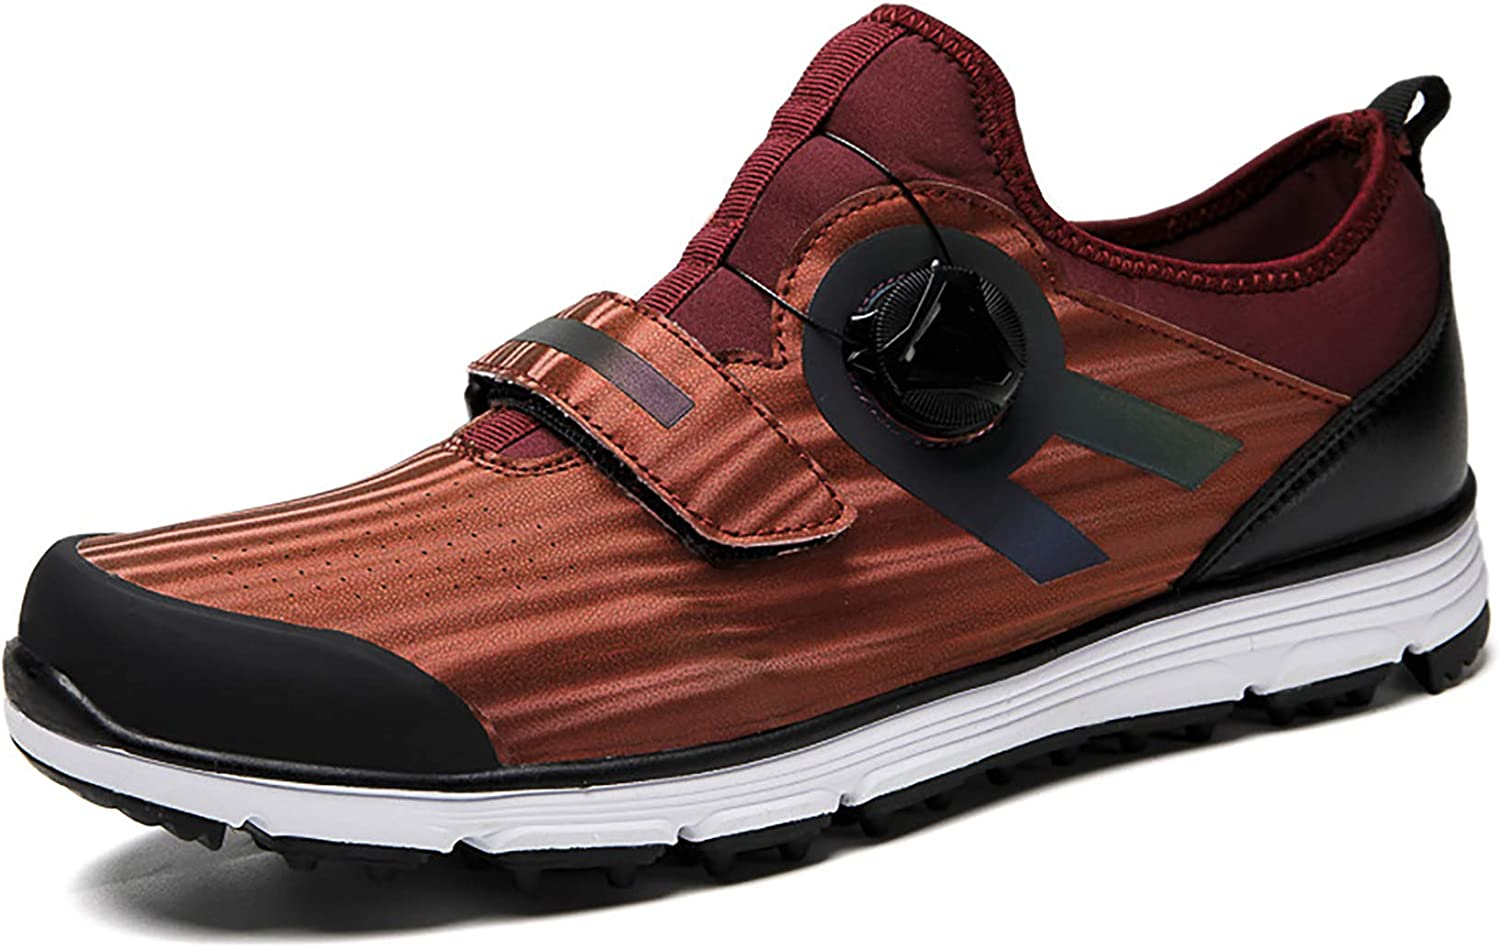 New life RTY Womens 2021 model Mens Golf Shoes Waterproof Sneakers Unisex Summer